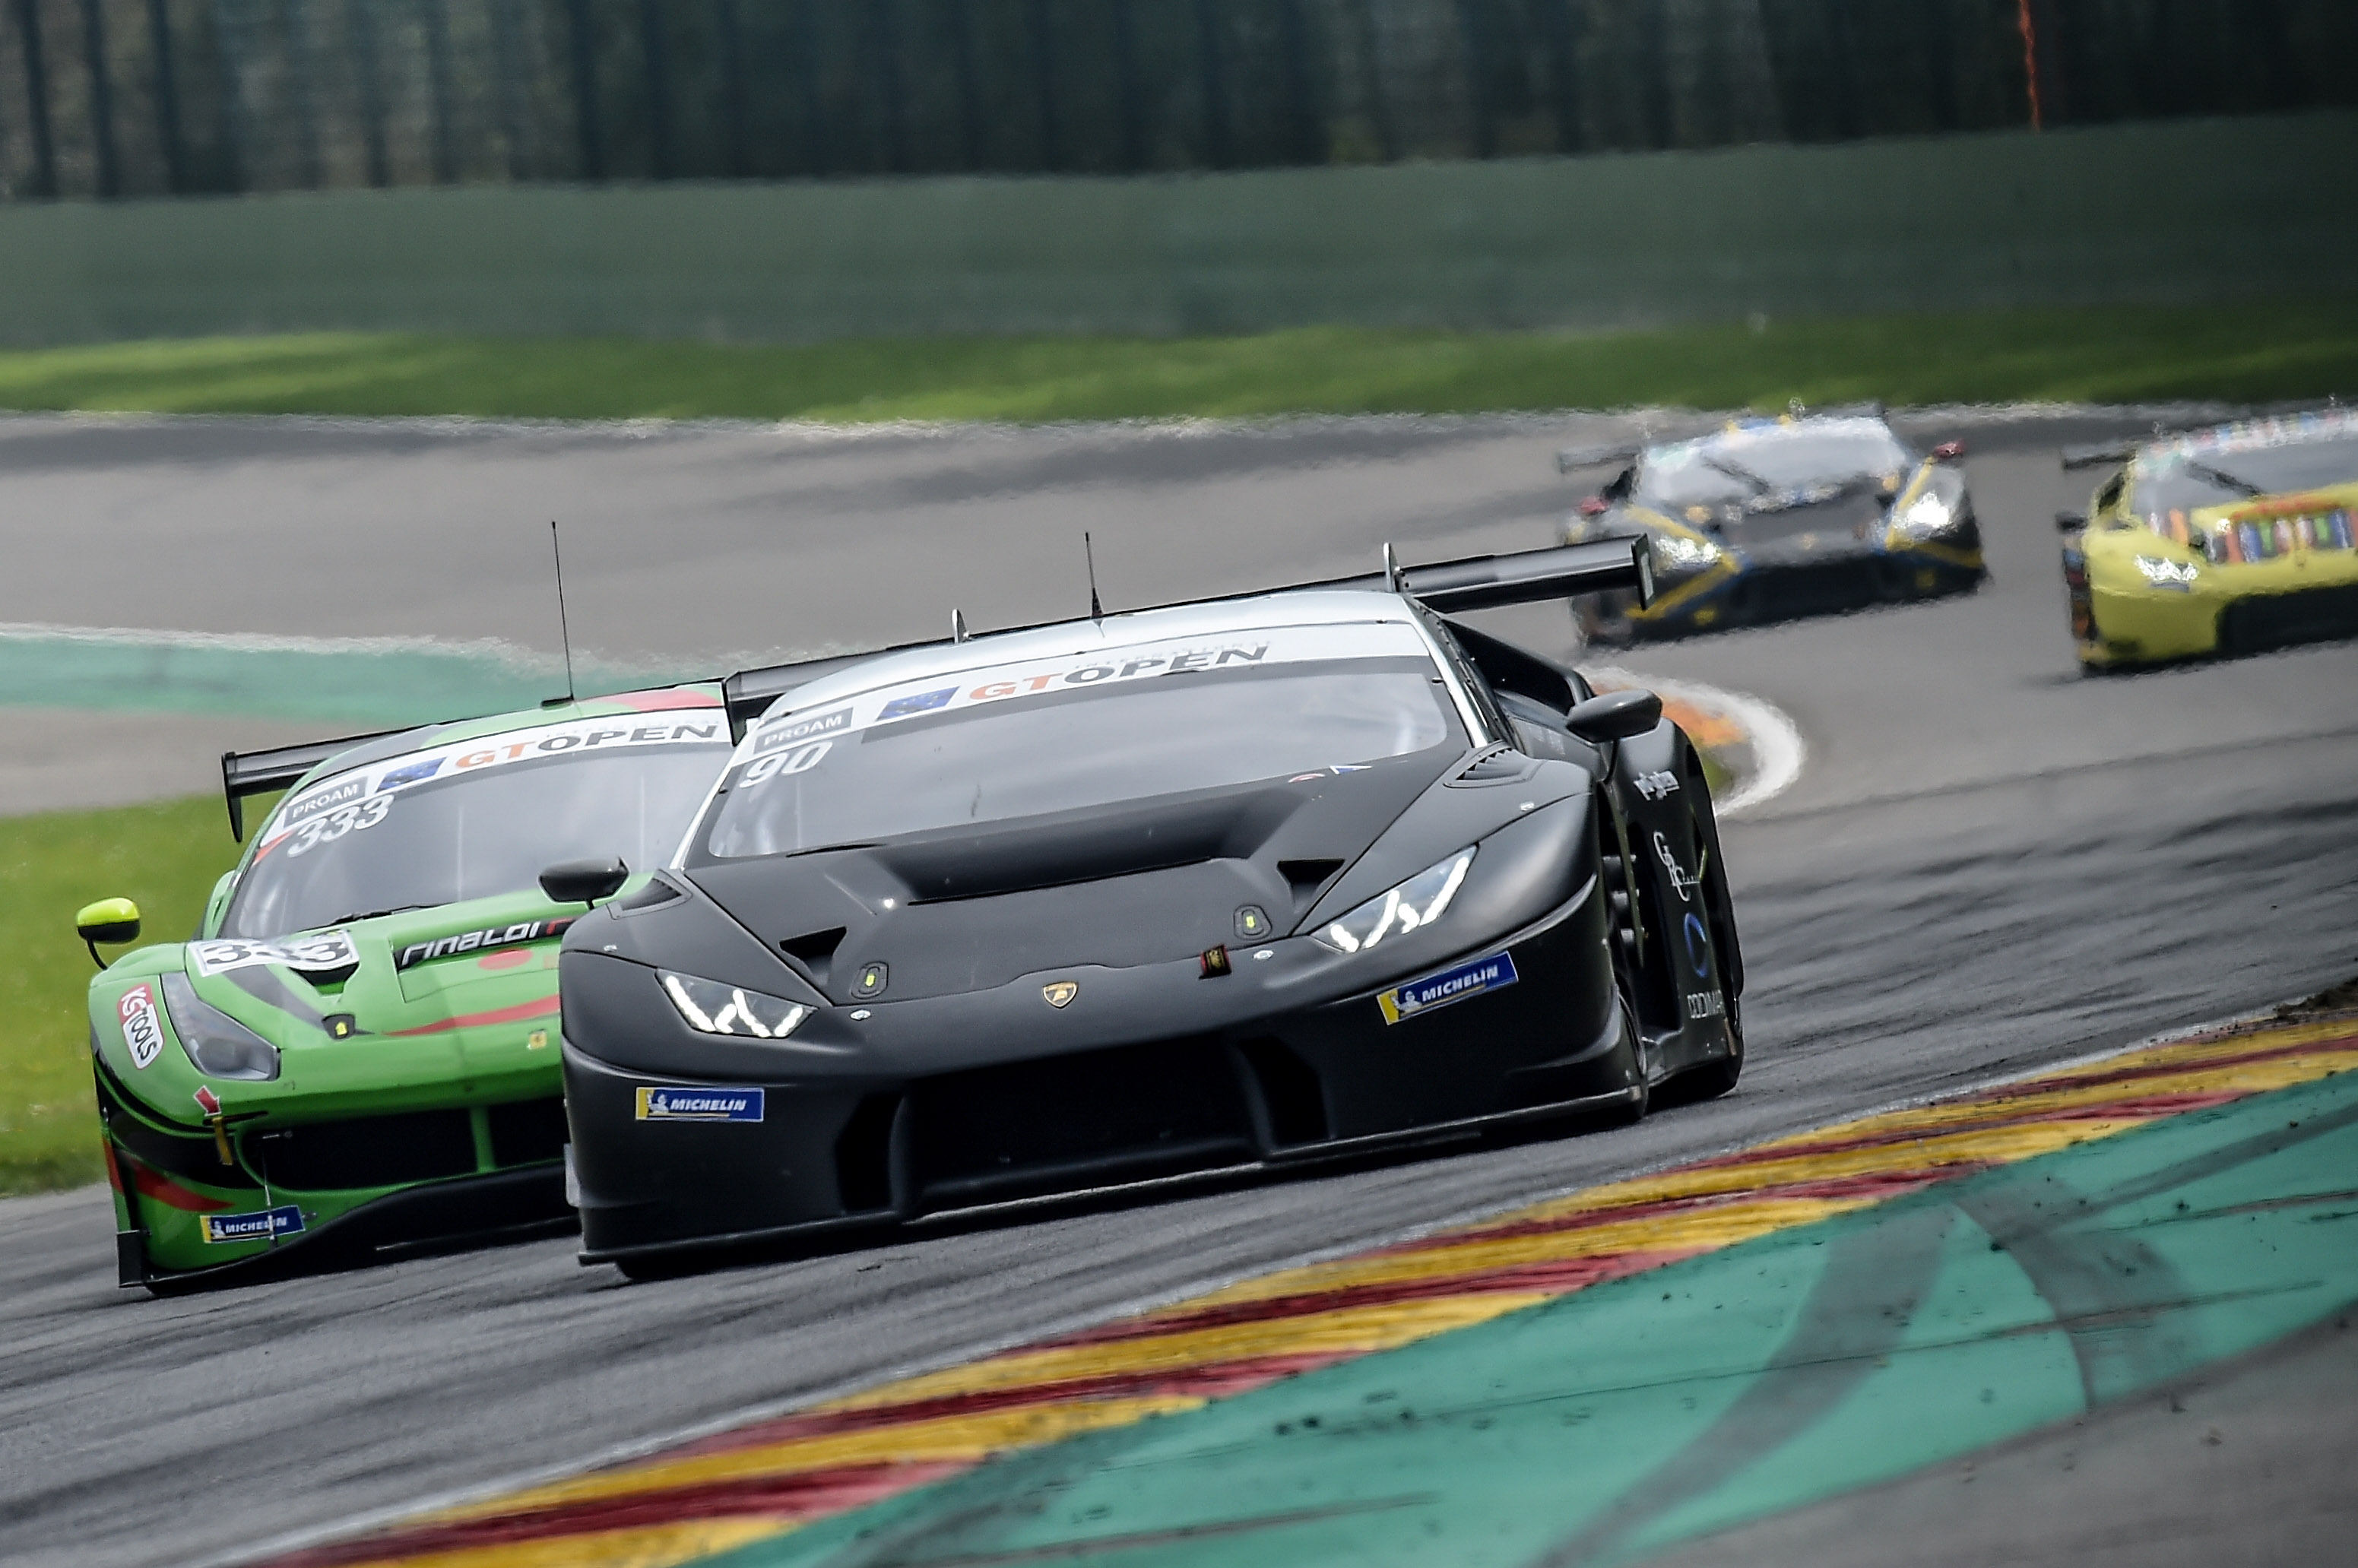 Target protagonista sfortunata nella tappa International GT Open a Spa